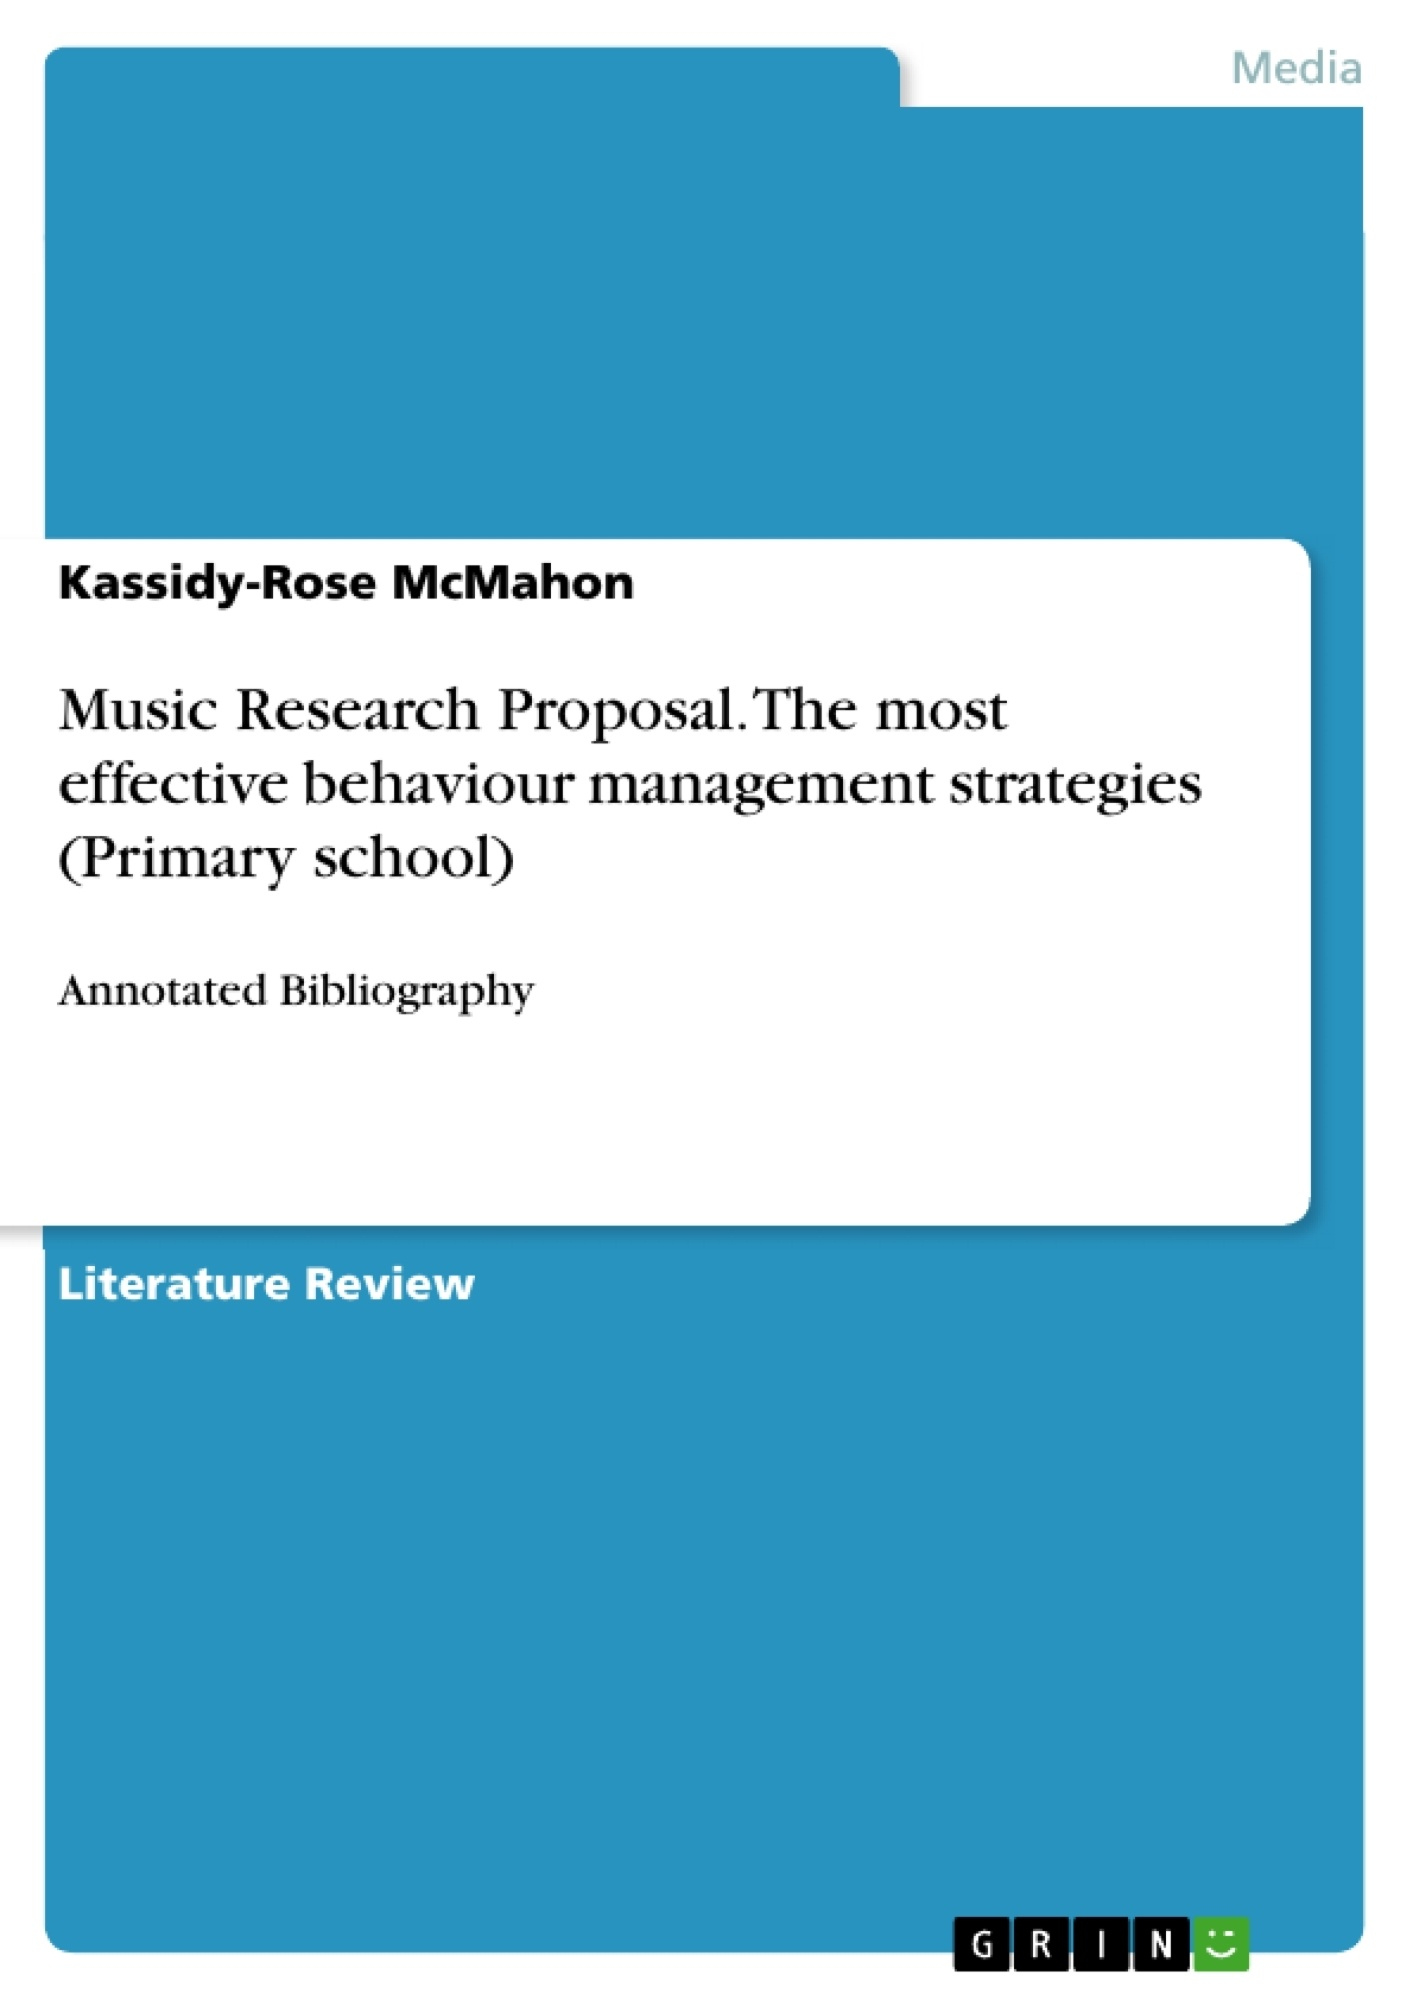 Title: Music Research Proposal. The most effective behaviour management strategies (Primary school)